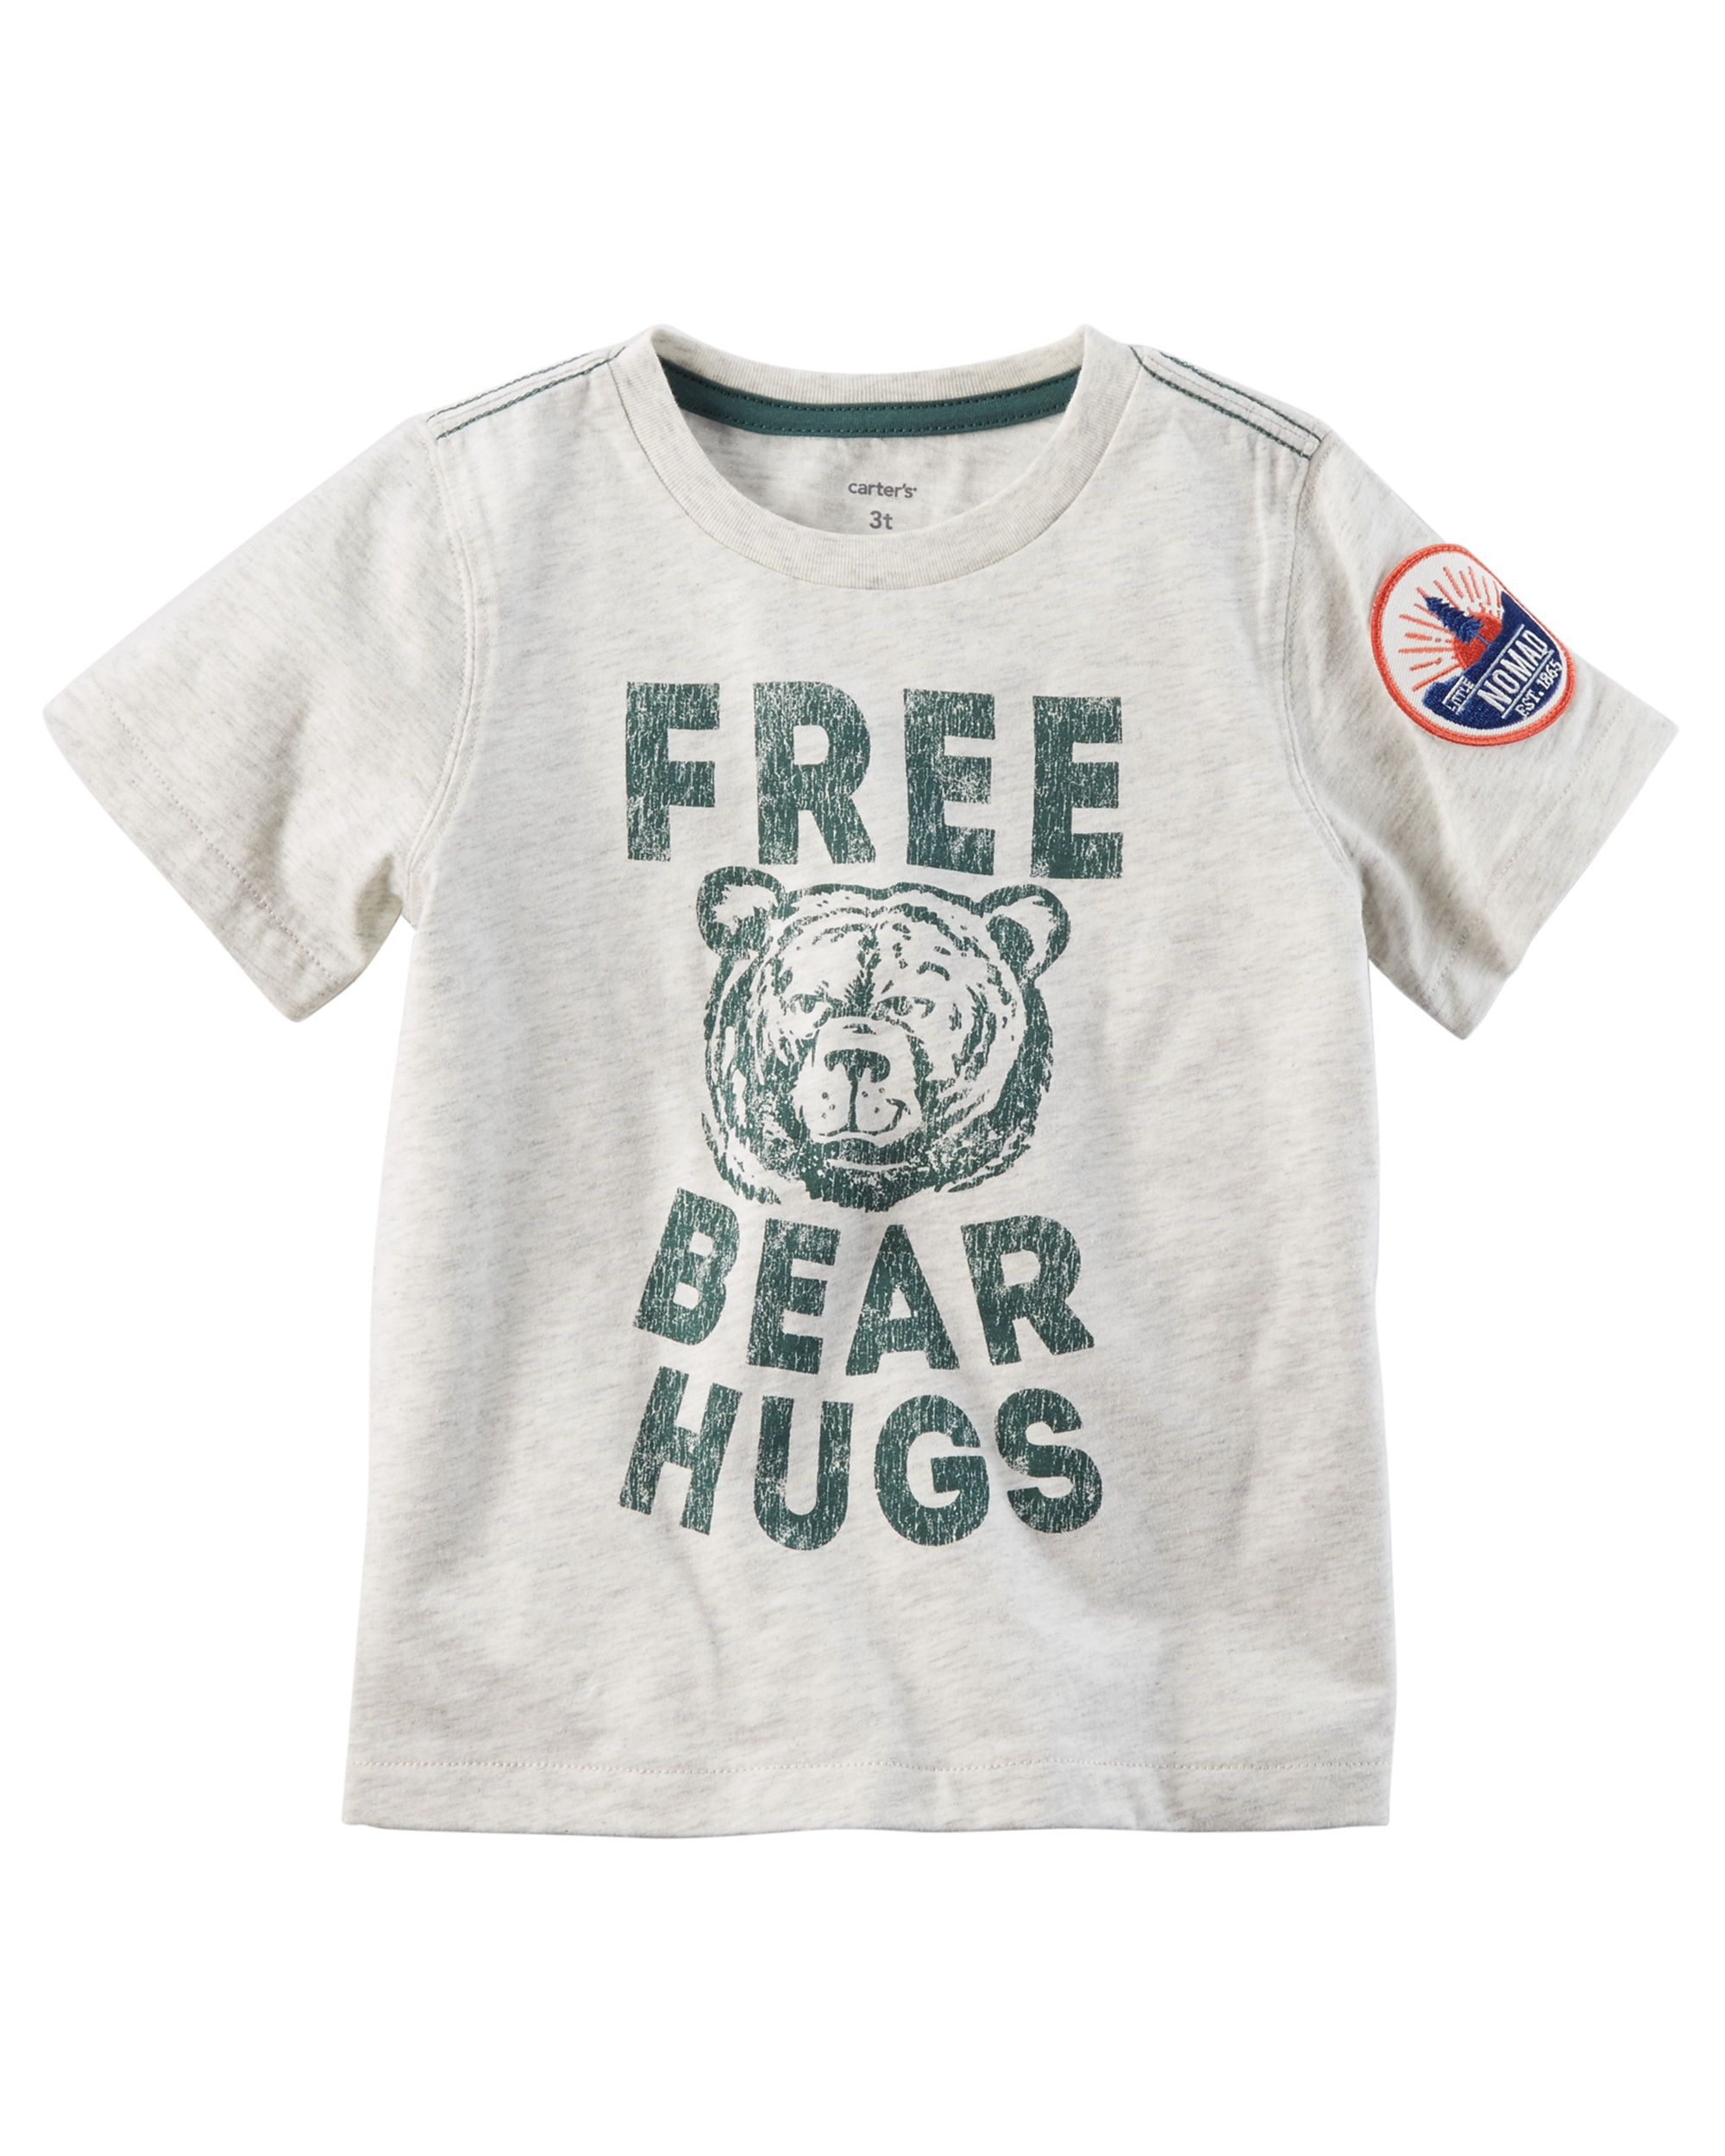 2e391a74 Free Bear Hugs Graphic Tee | for Presley | Tops, Boys, Graphic tees